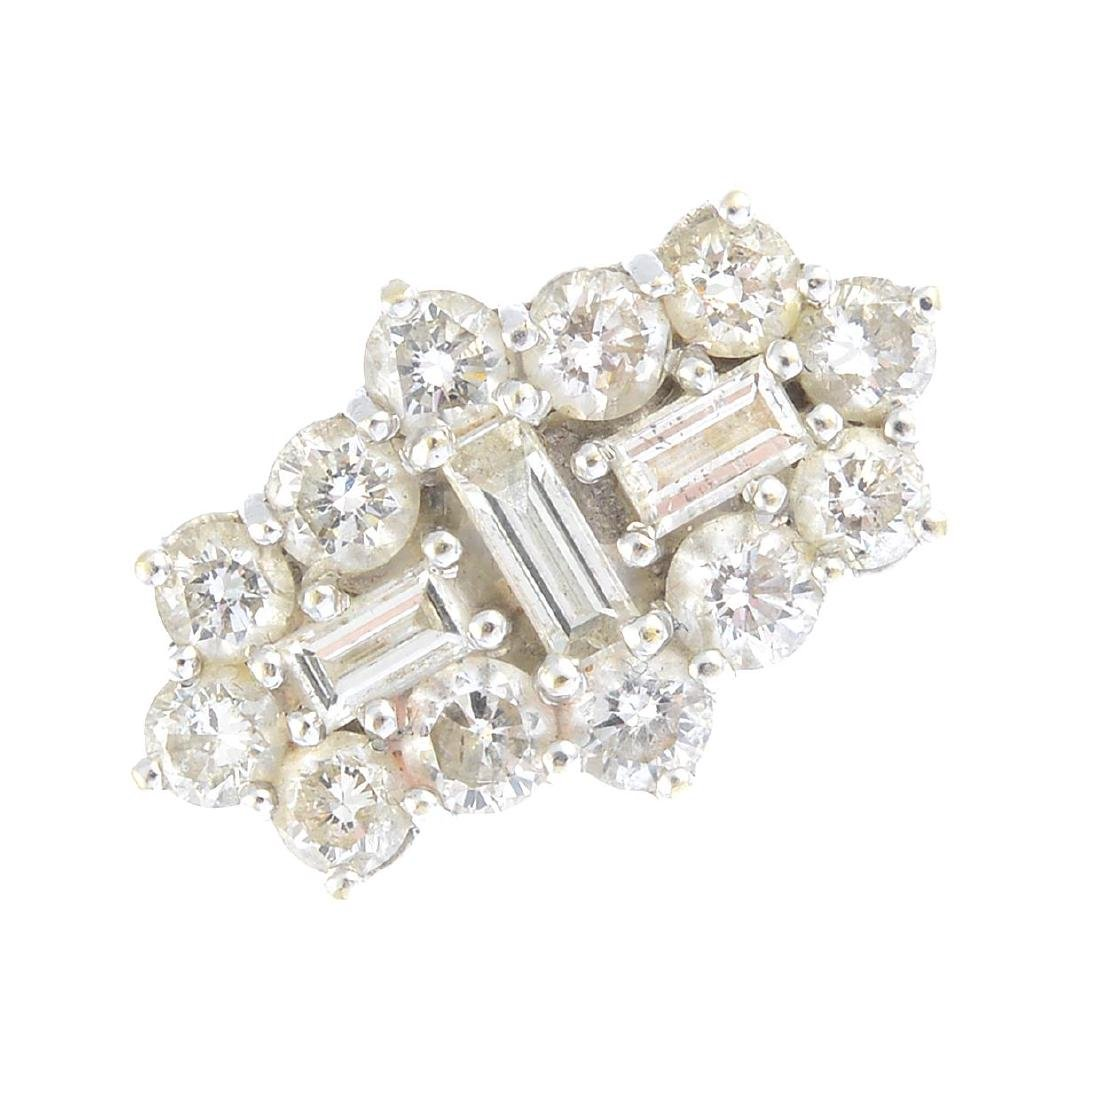 (203503) An 18ct gold diamond cluster ring.  The